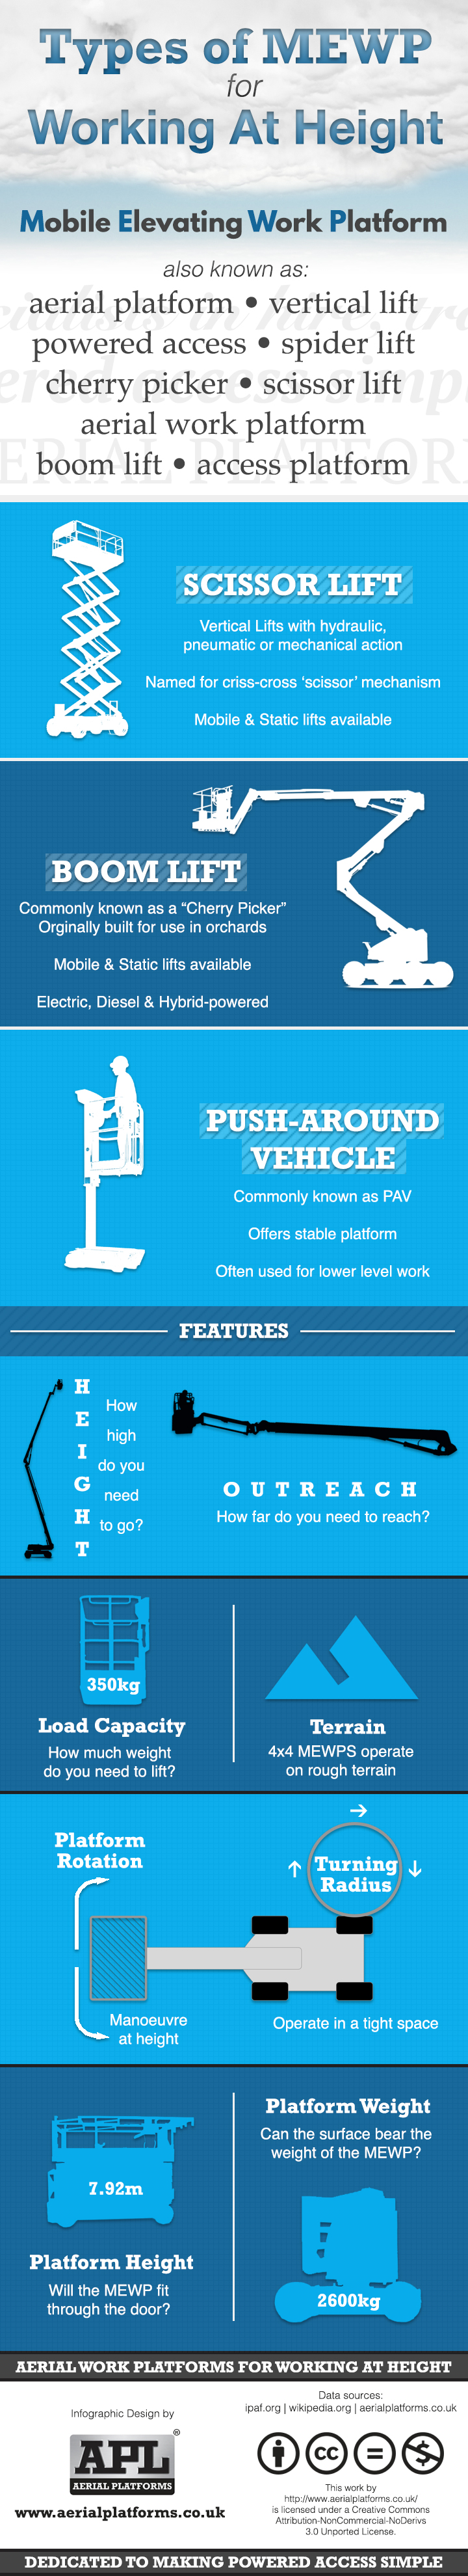 types-mewp-working-height-infographic